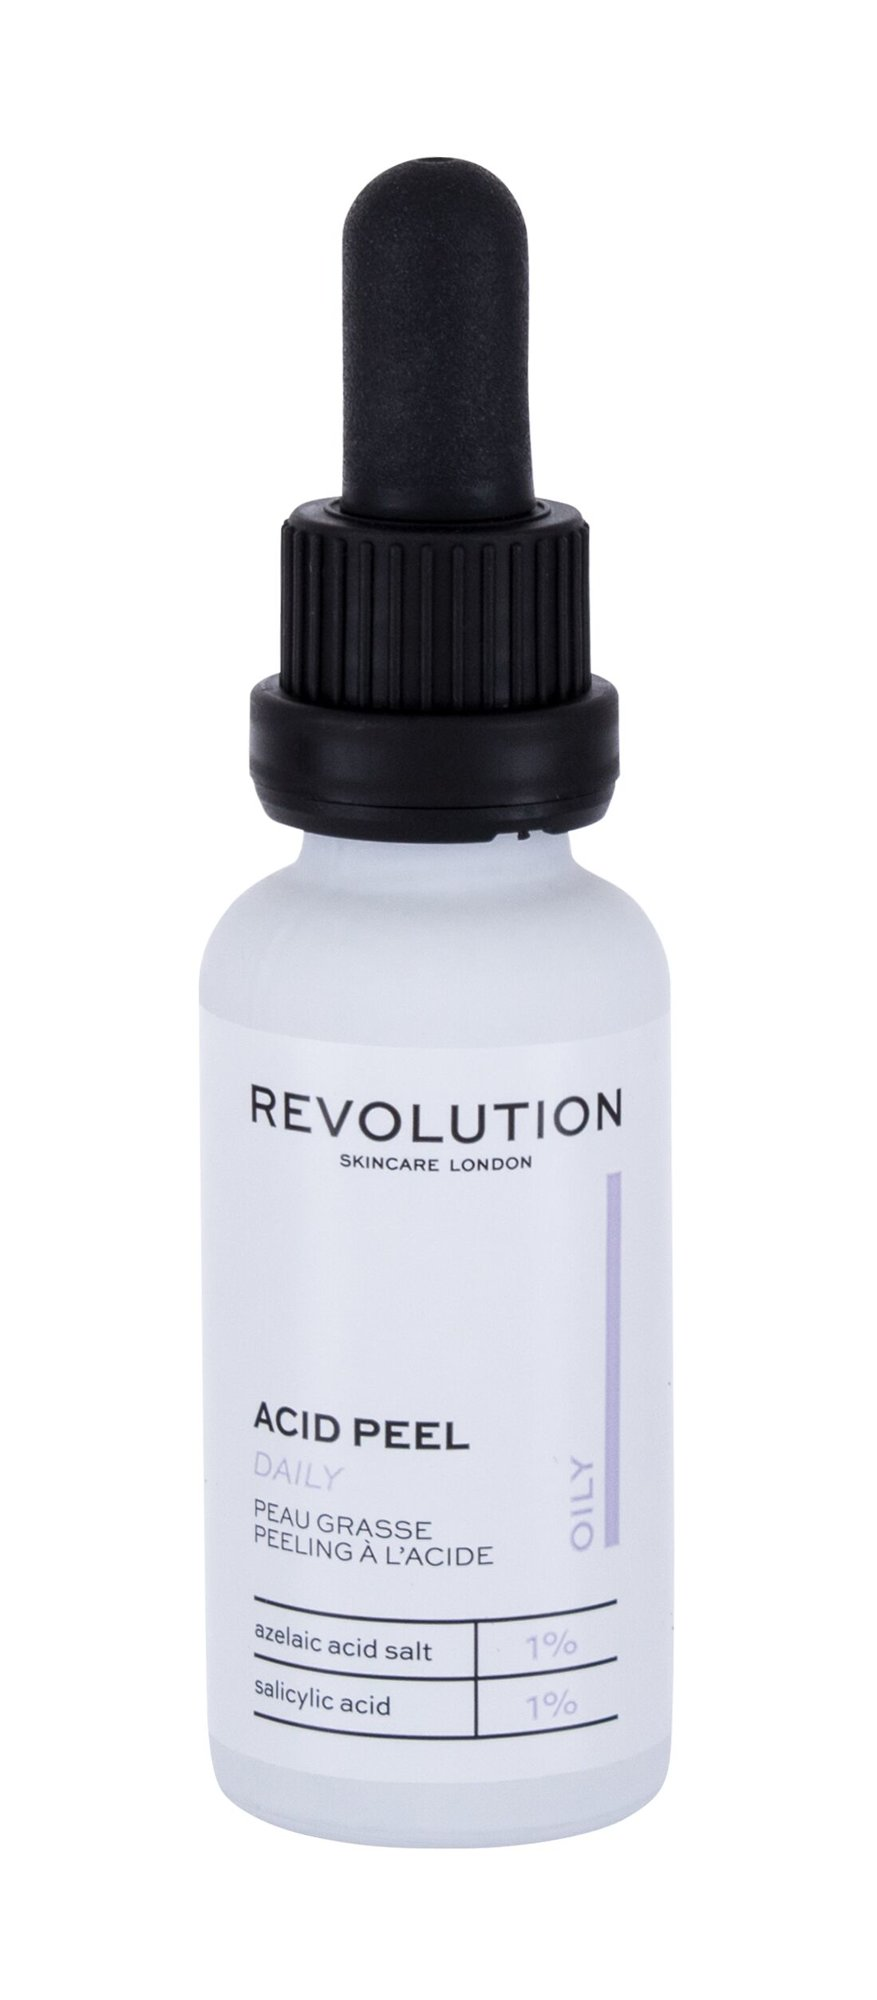 Revolution Skincare Acid Peel Oily, Radír 30ml - Daily